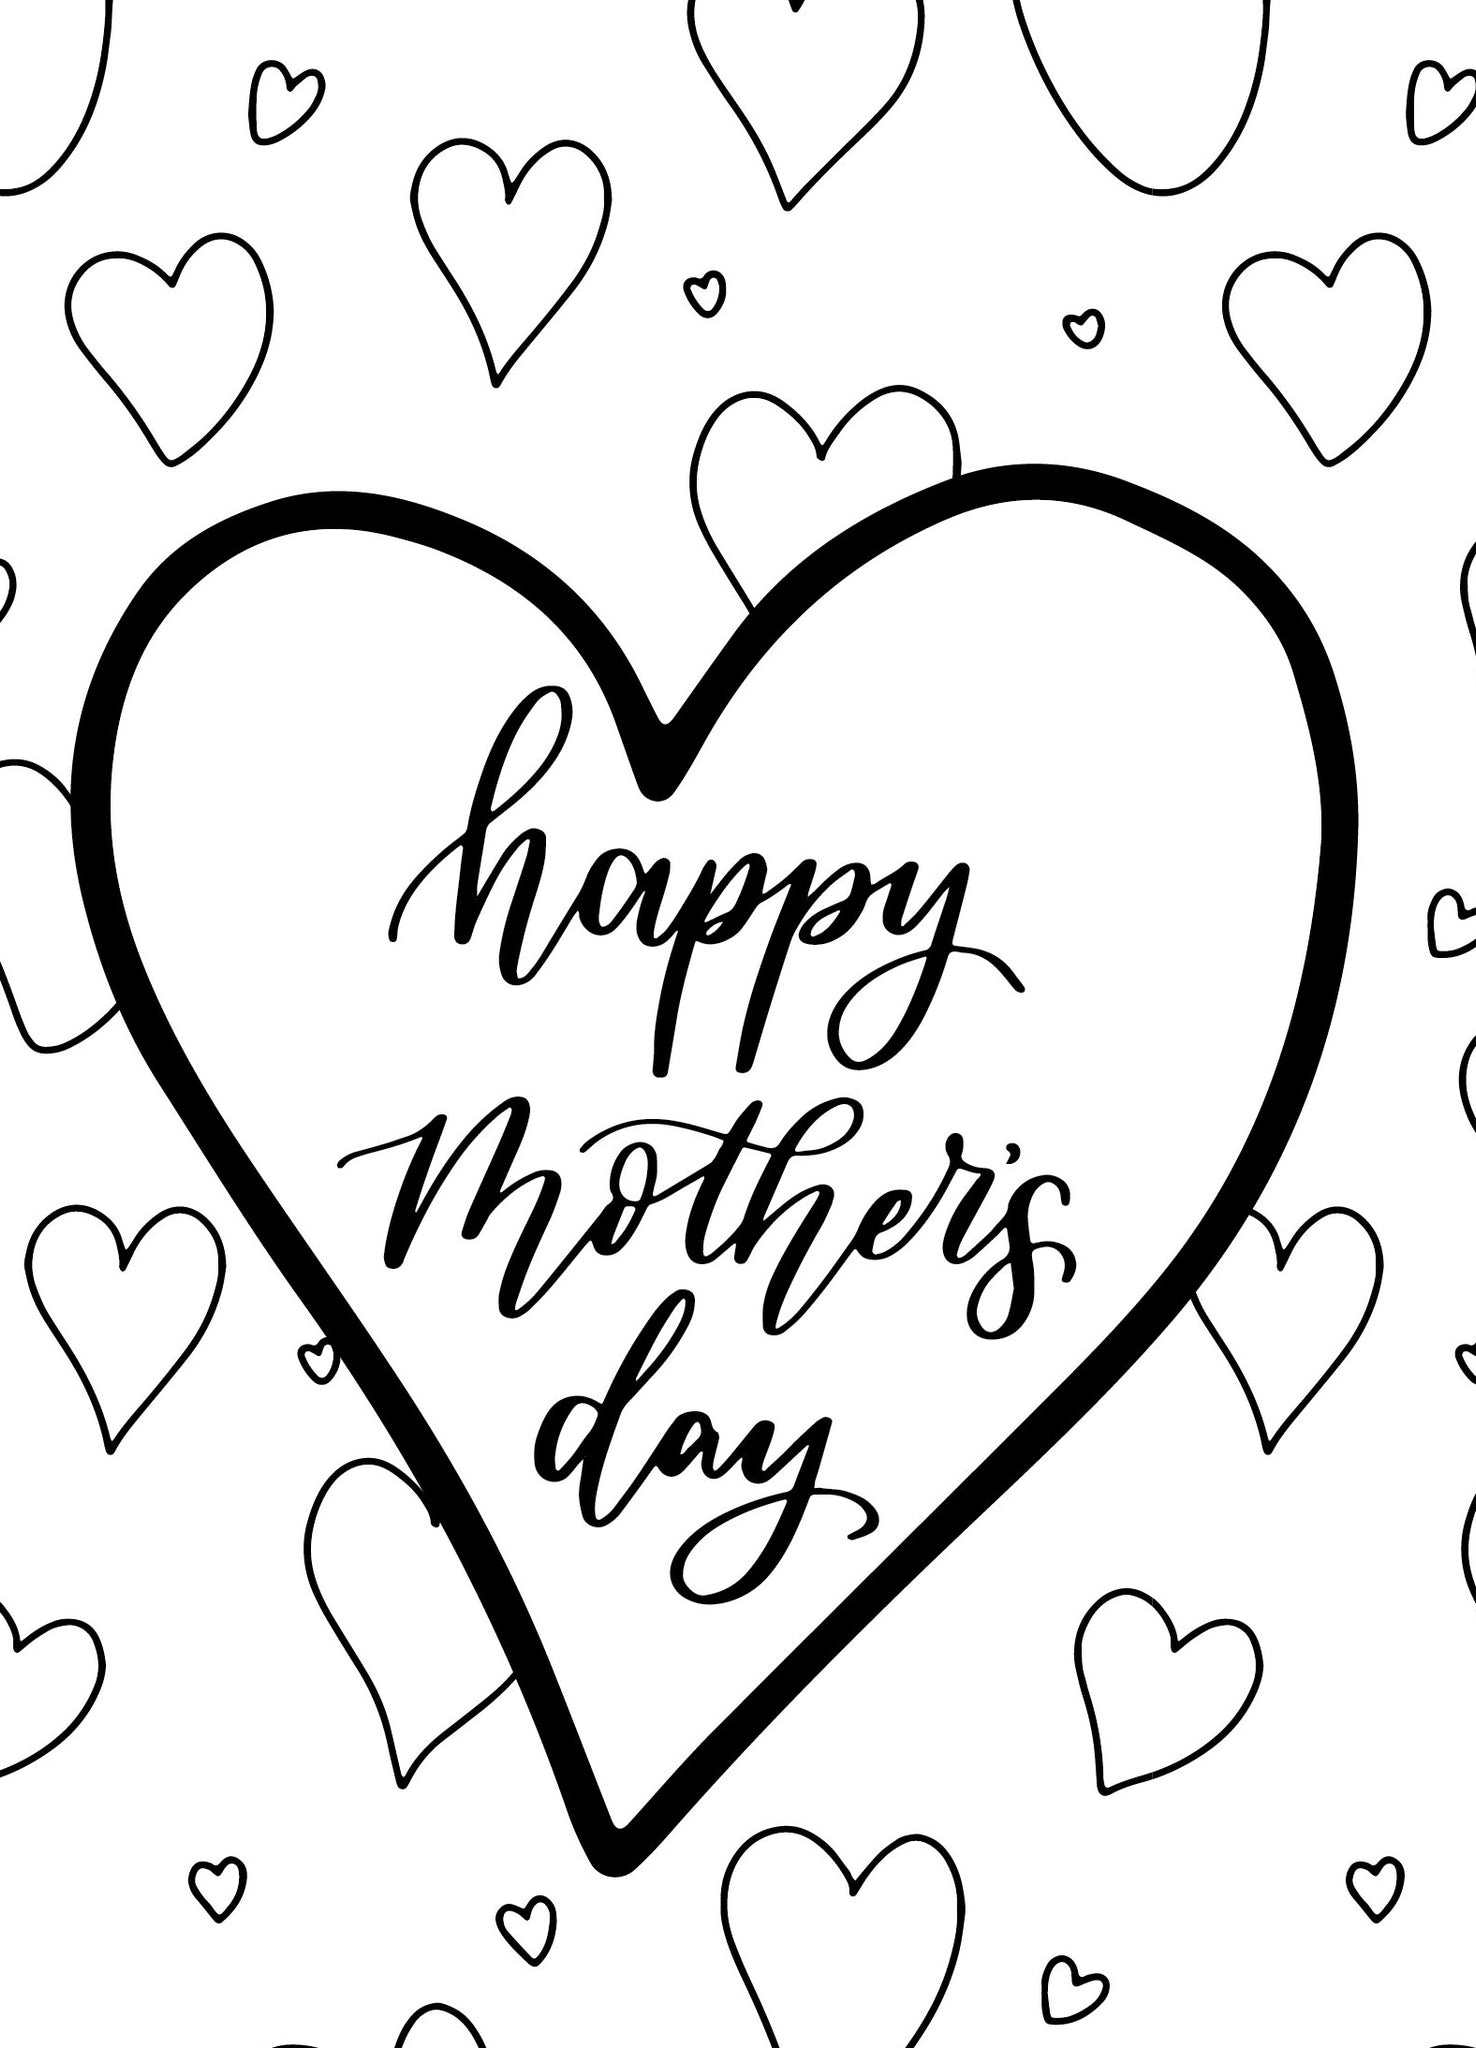 Mother's Day Colouring Card Hearts - Free Download